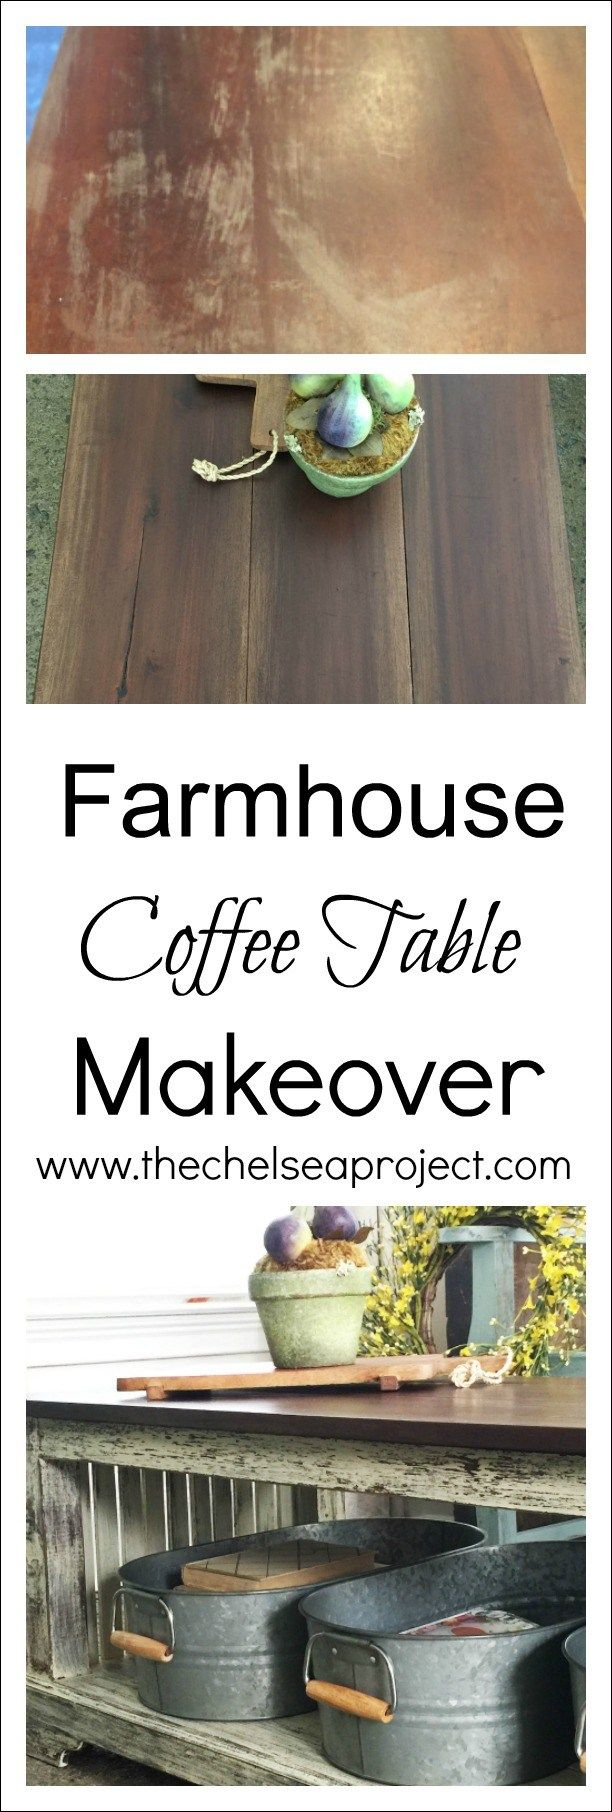 Farmhouse Coffee Table Makeover | www.thechelseaproject.com